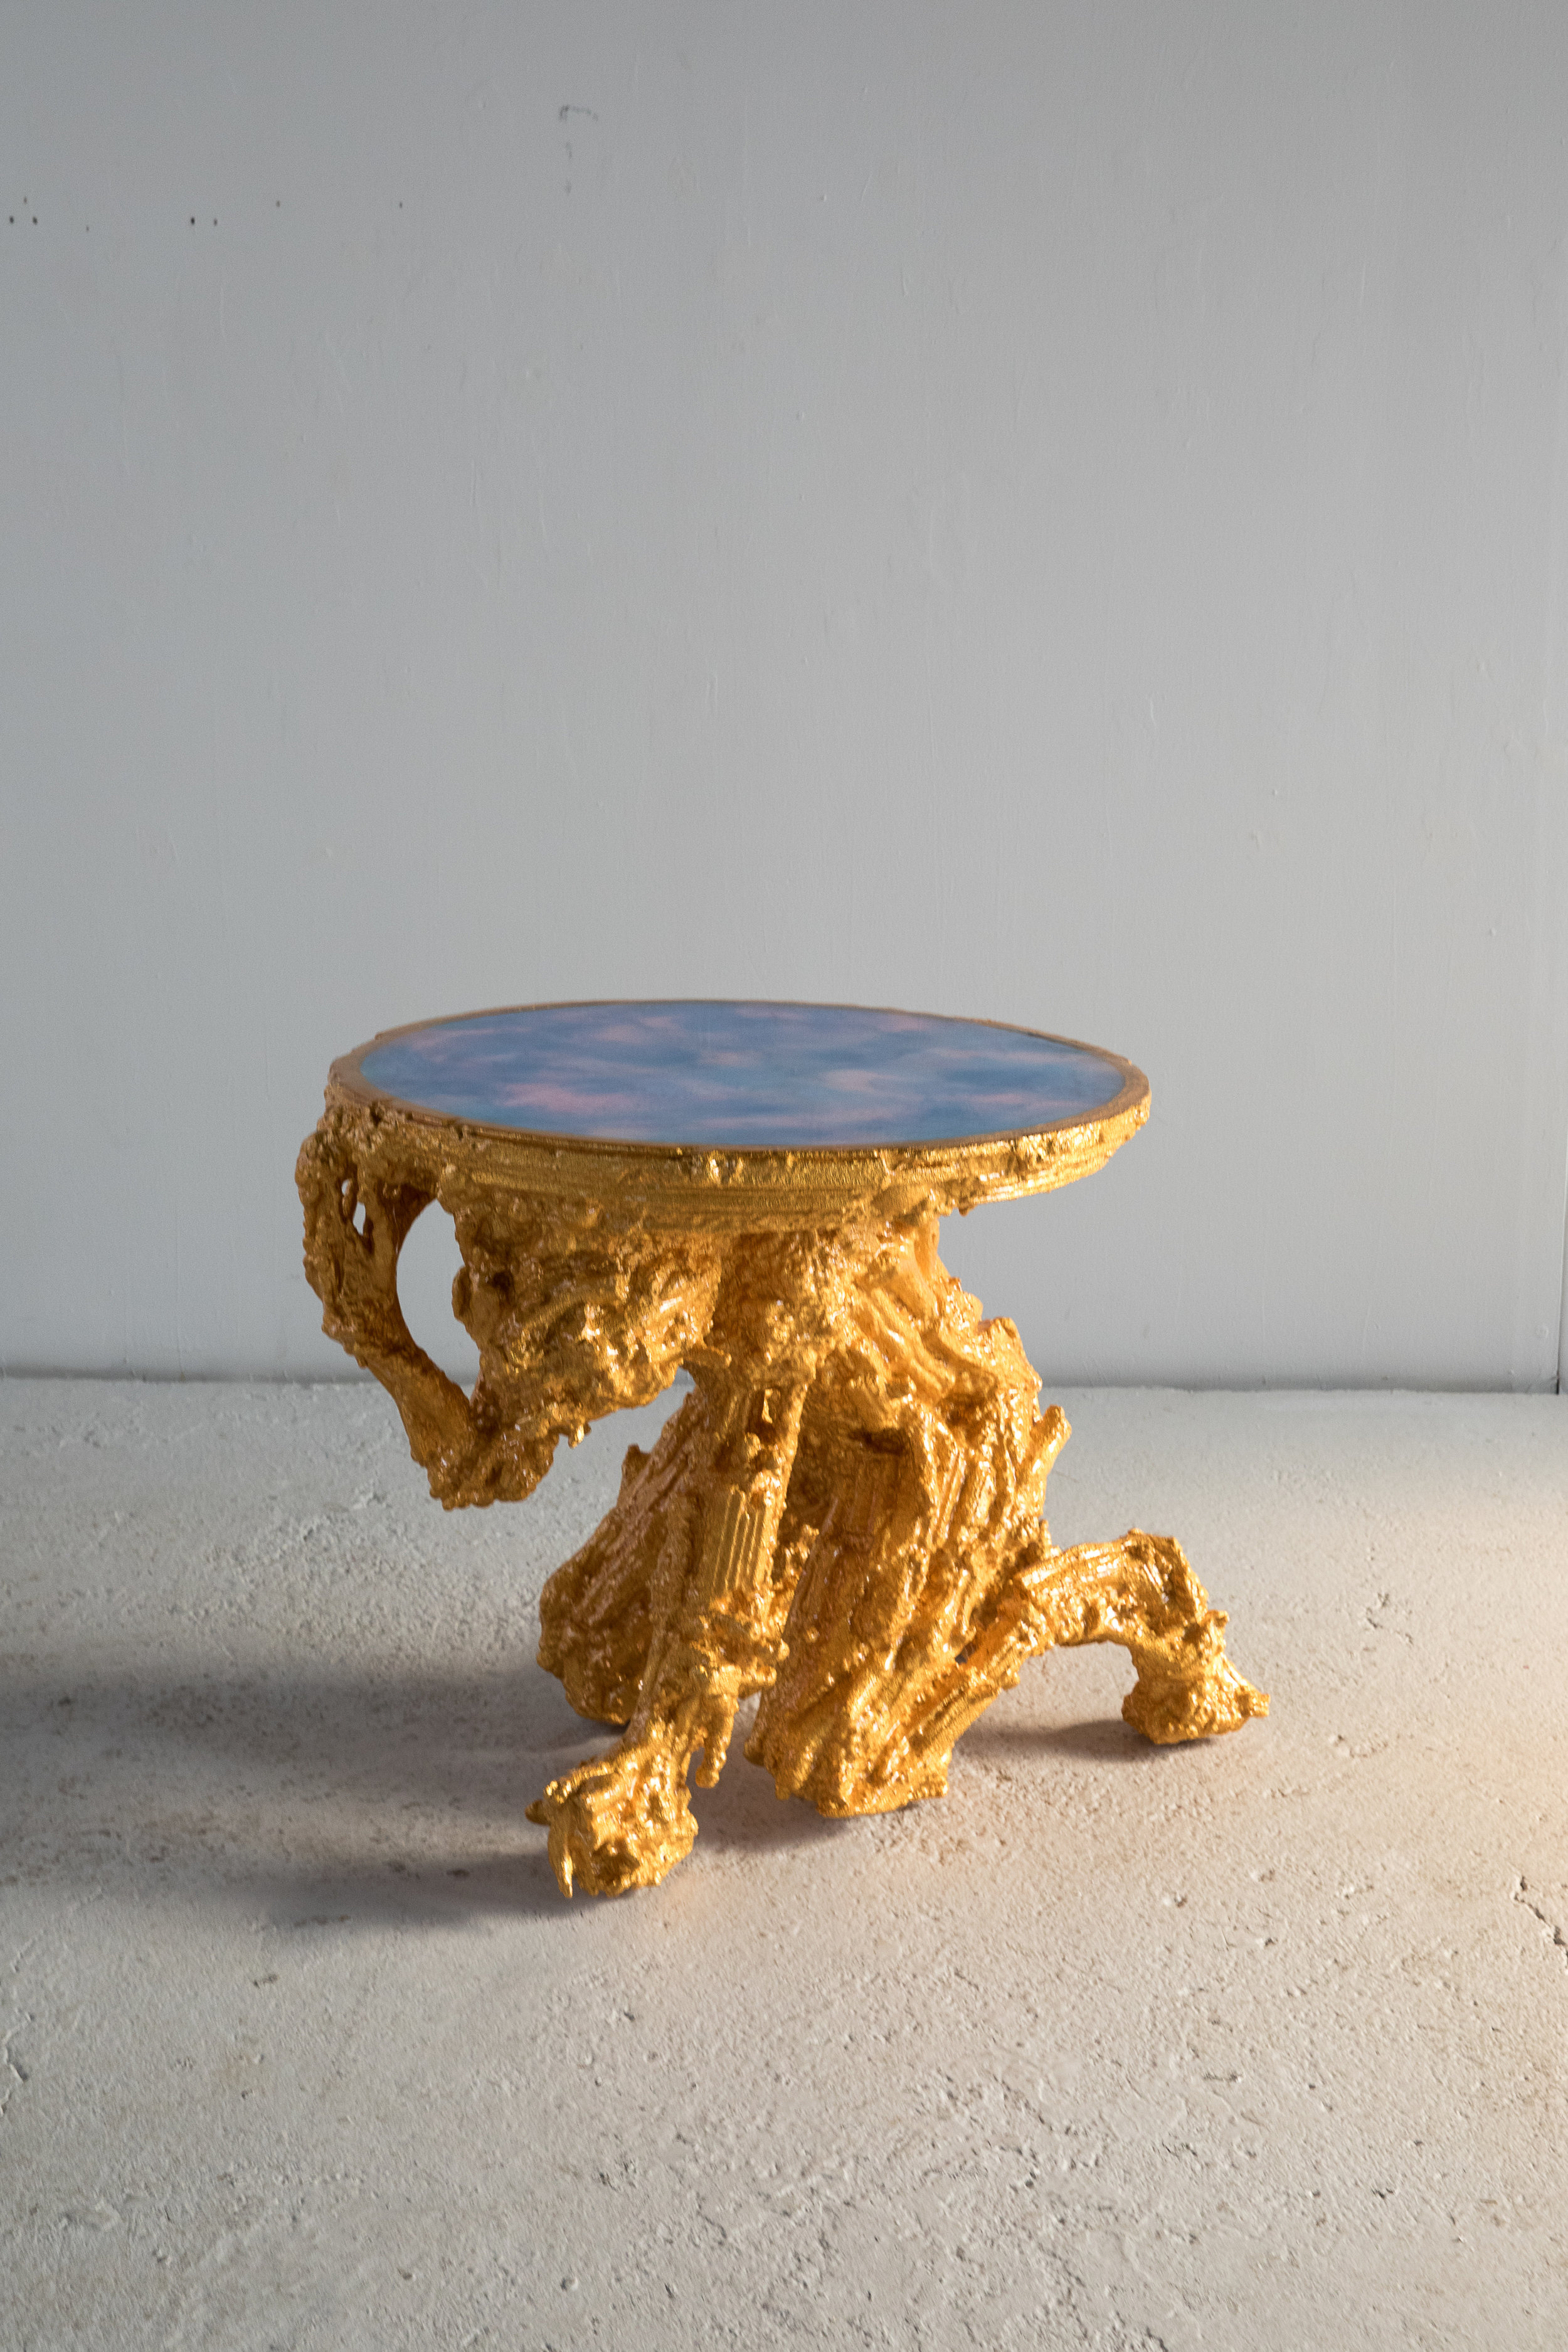 Gold 900 , 2018 35 x 32 x 31 inches Resin, steel, aluminum, polystyrene, and wood